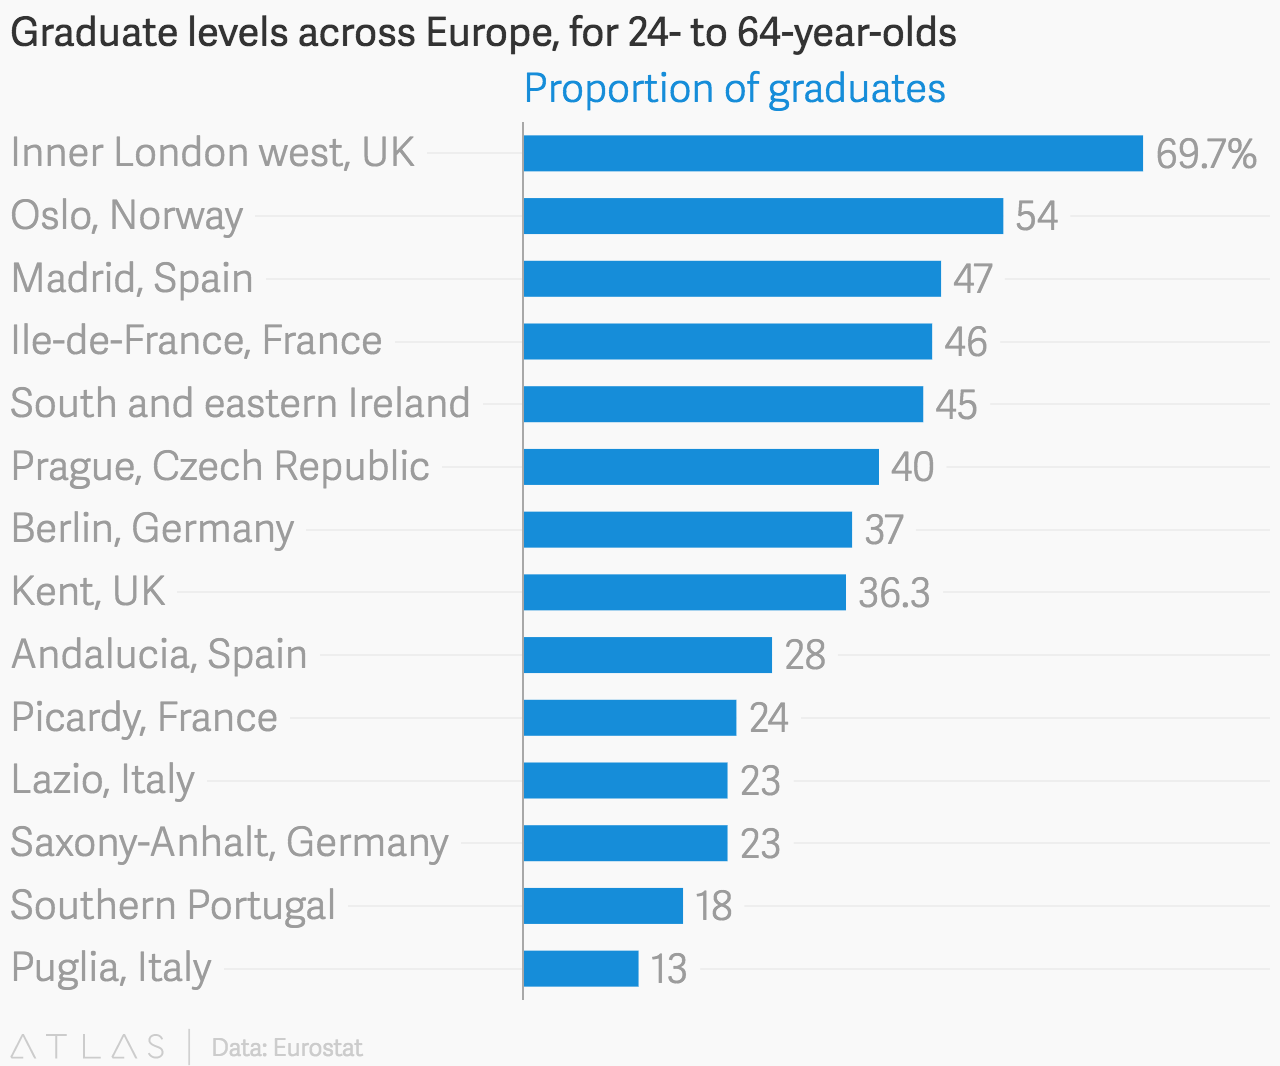 Graduate levels across Europe, for 24- to 64-year-olds